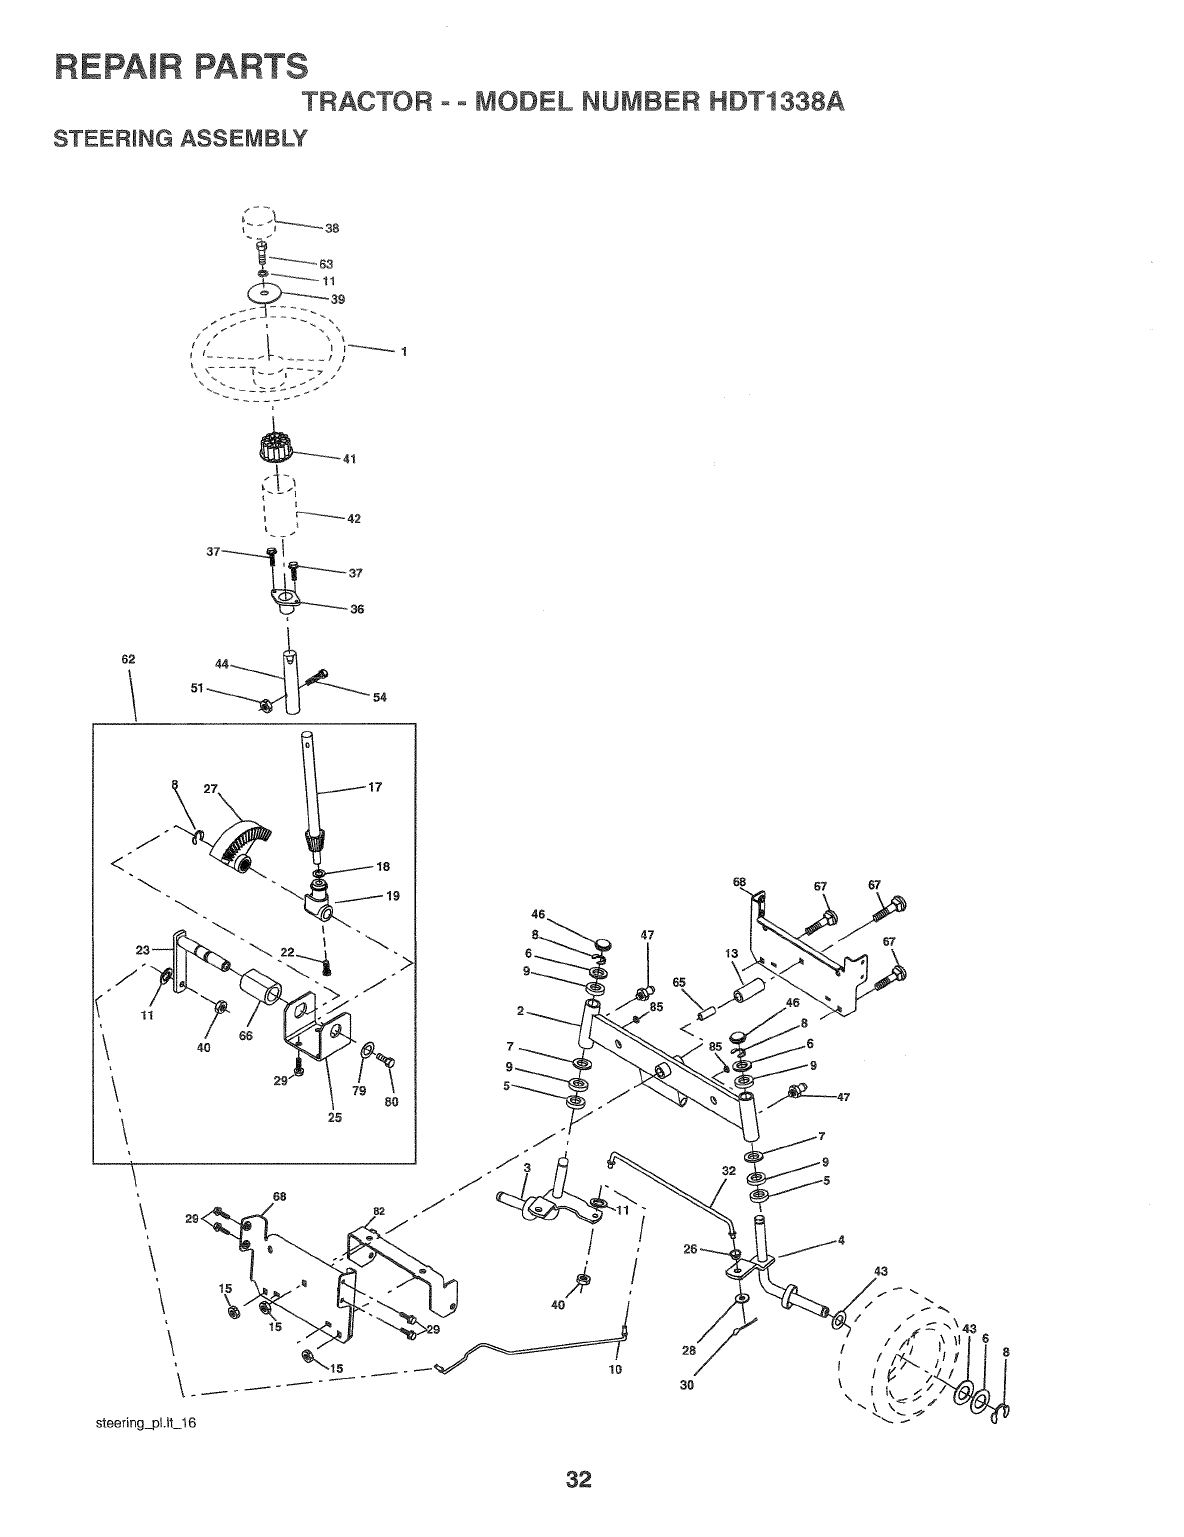 Page 32 of Weed Eater Lawn Mower HDT1338A User Guide